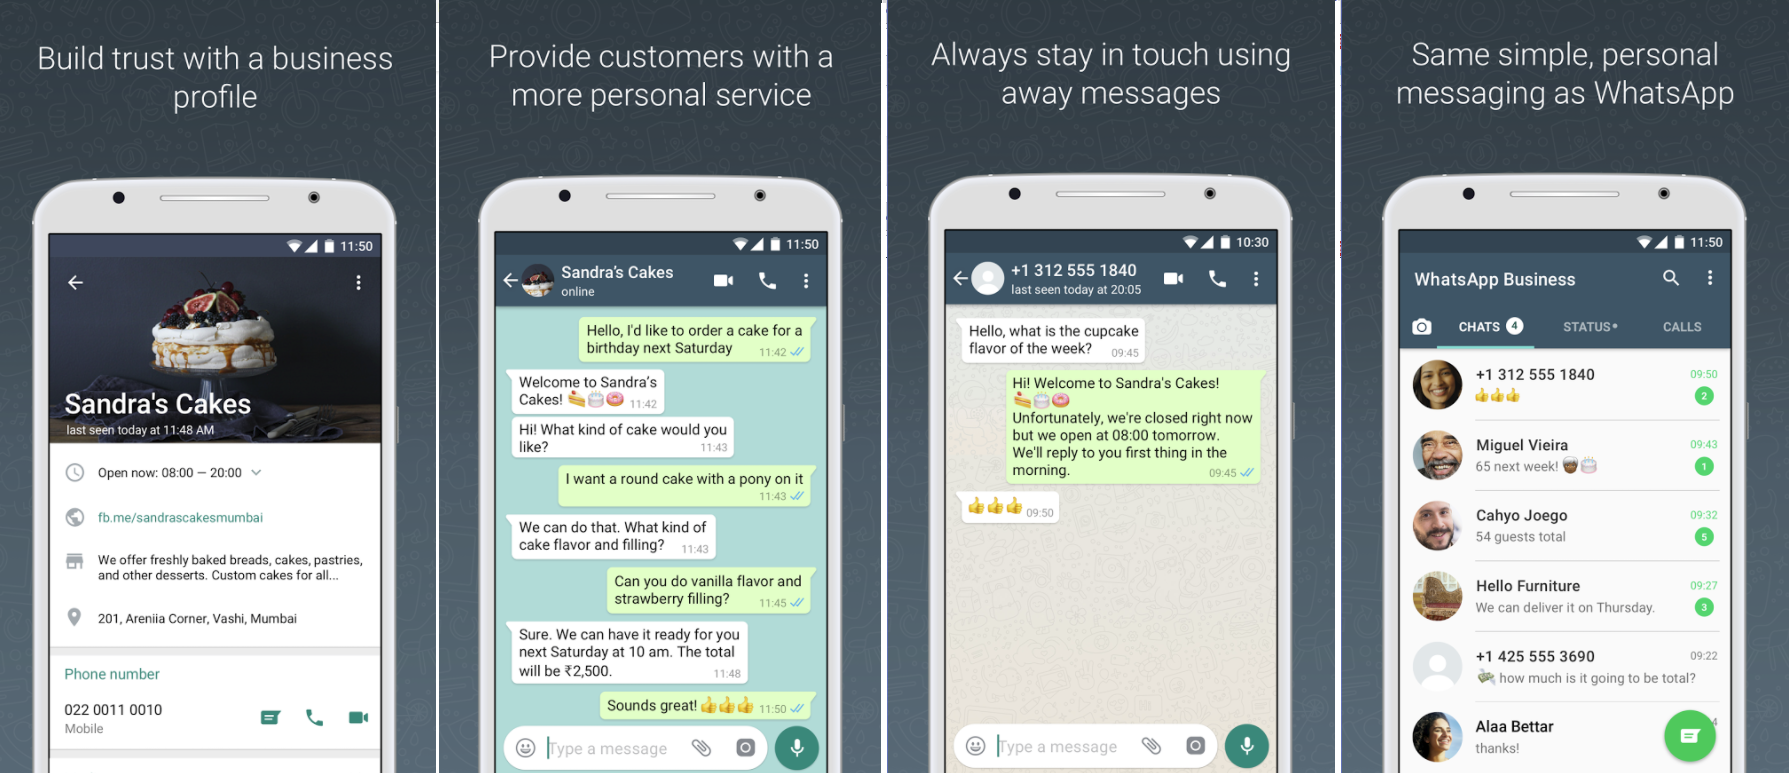 Evolving WhatsApp Could Present New Opportunities for Brands | Social Media Today